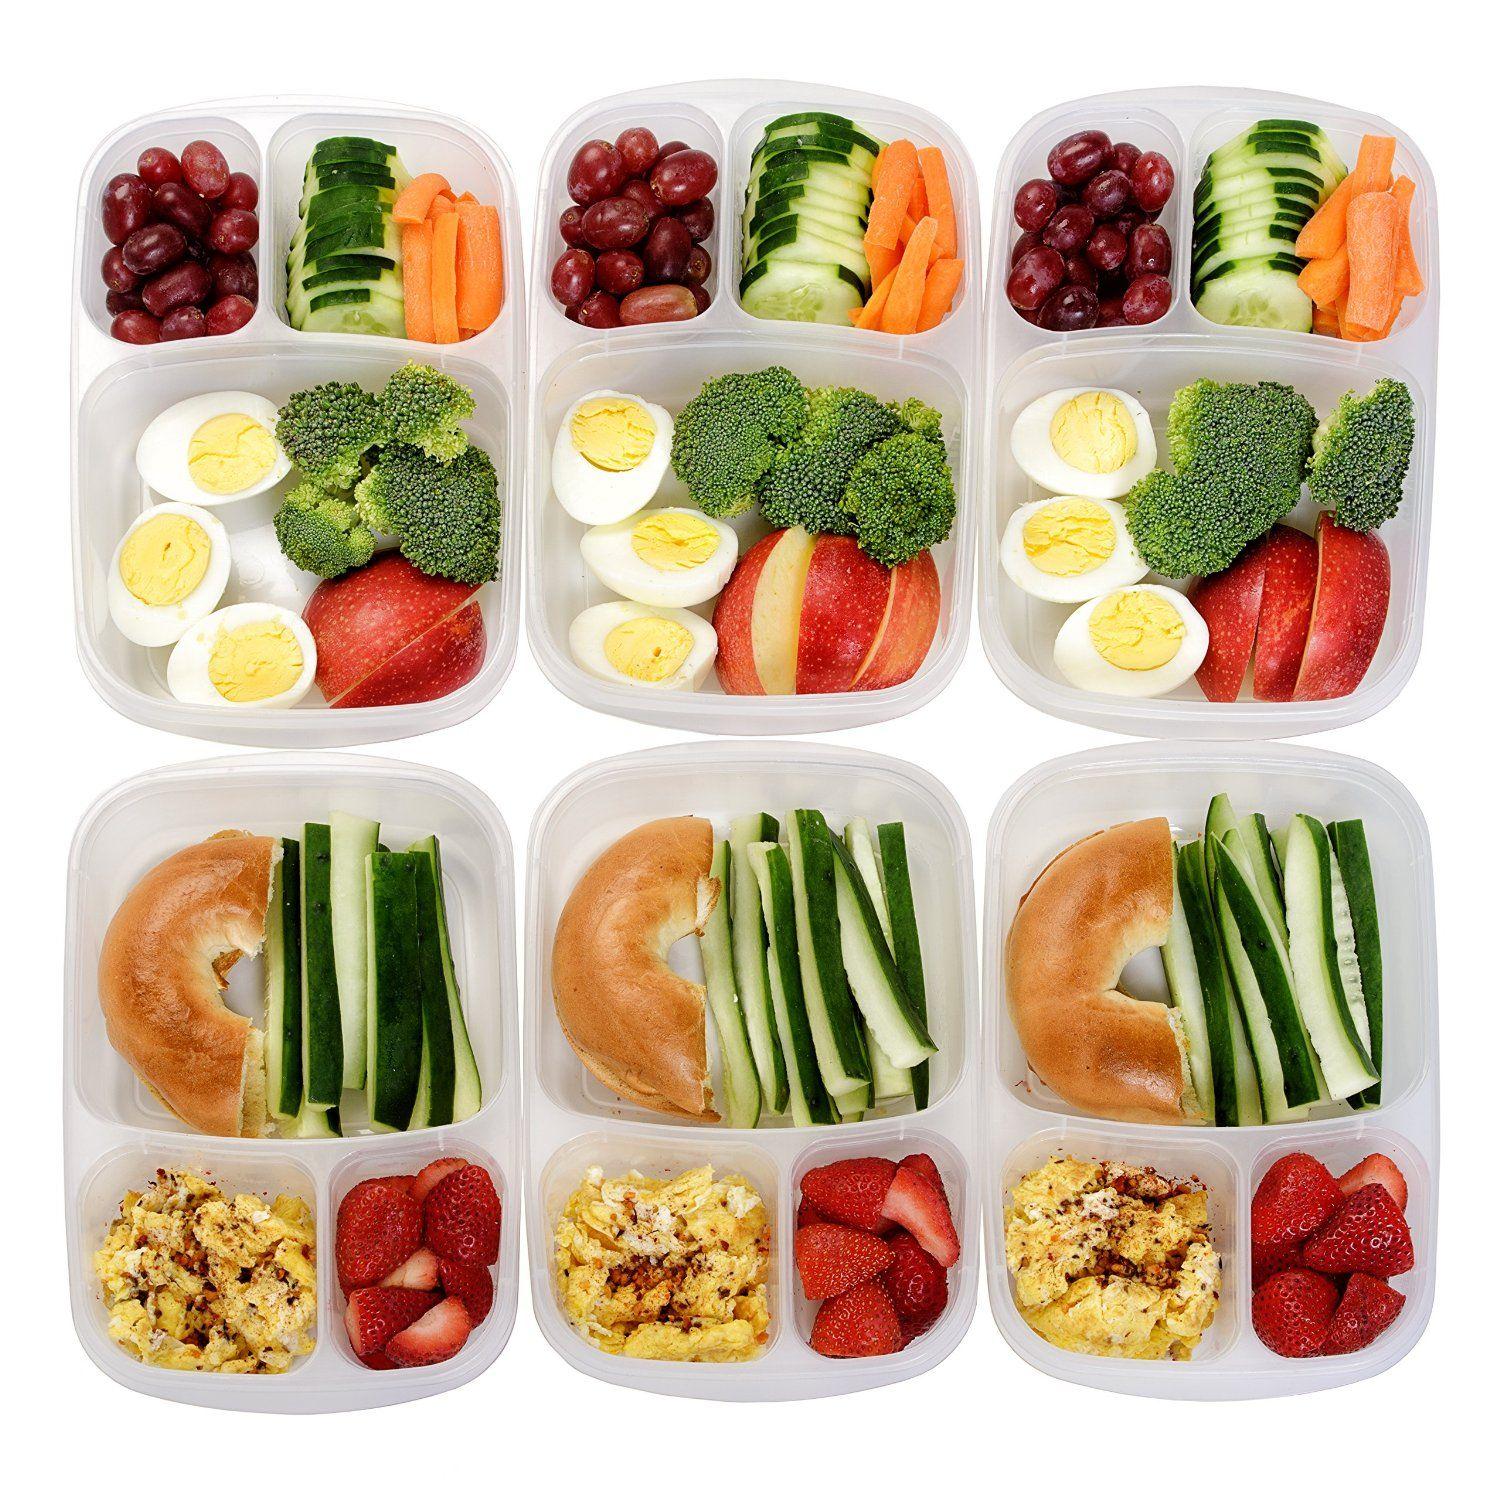 Daily diet for good health - 13 Make Ahead Meals For Healthy Eating On The Go